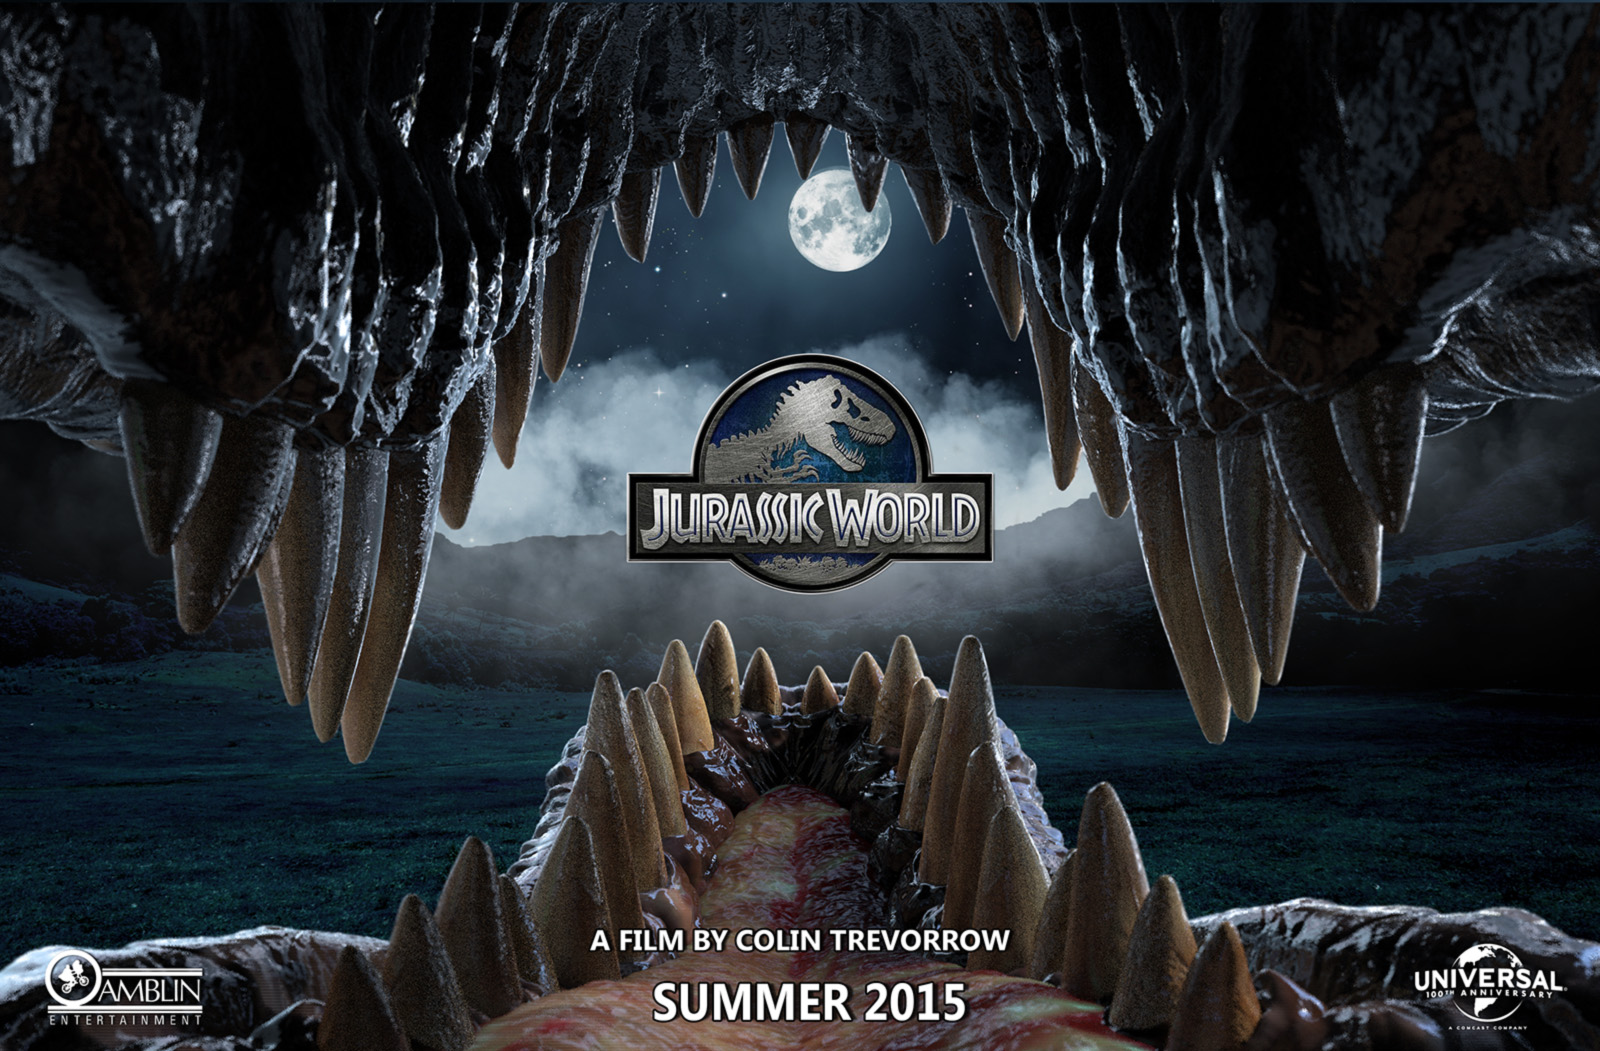 Director Colin Trevorrow Reveals 'Jurassic World' Plot Details